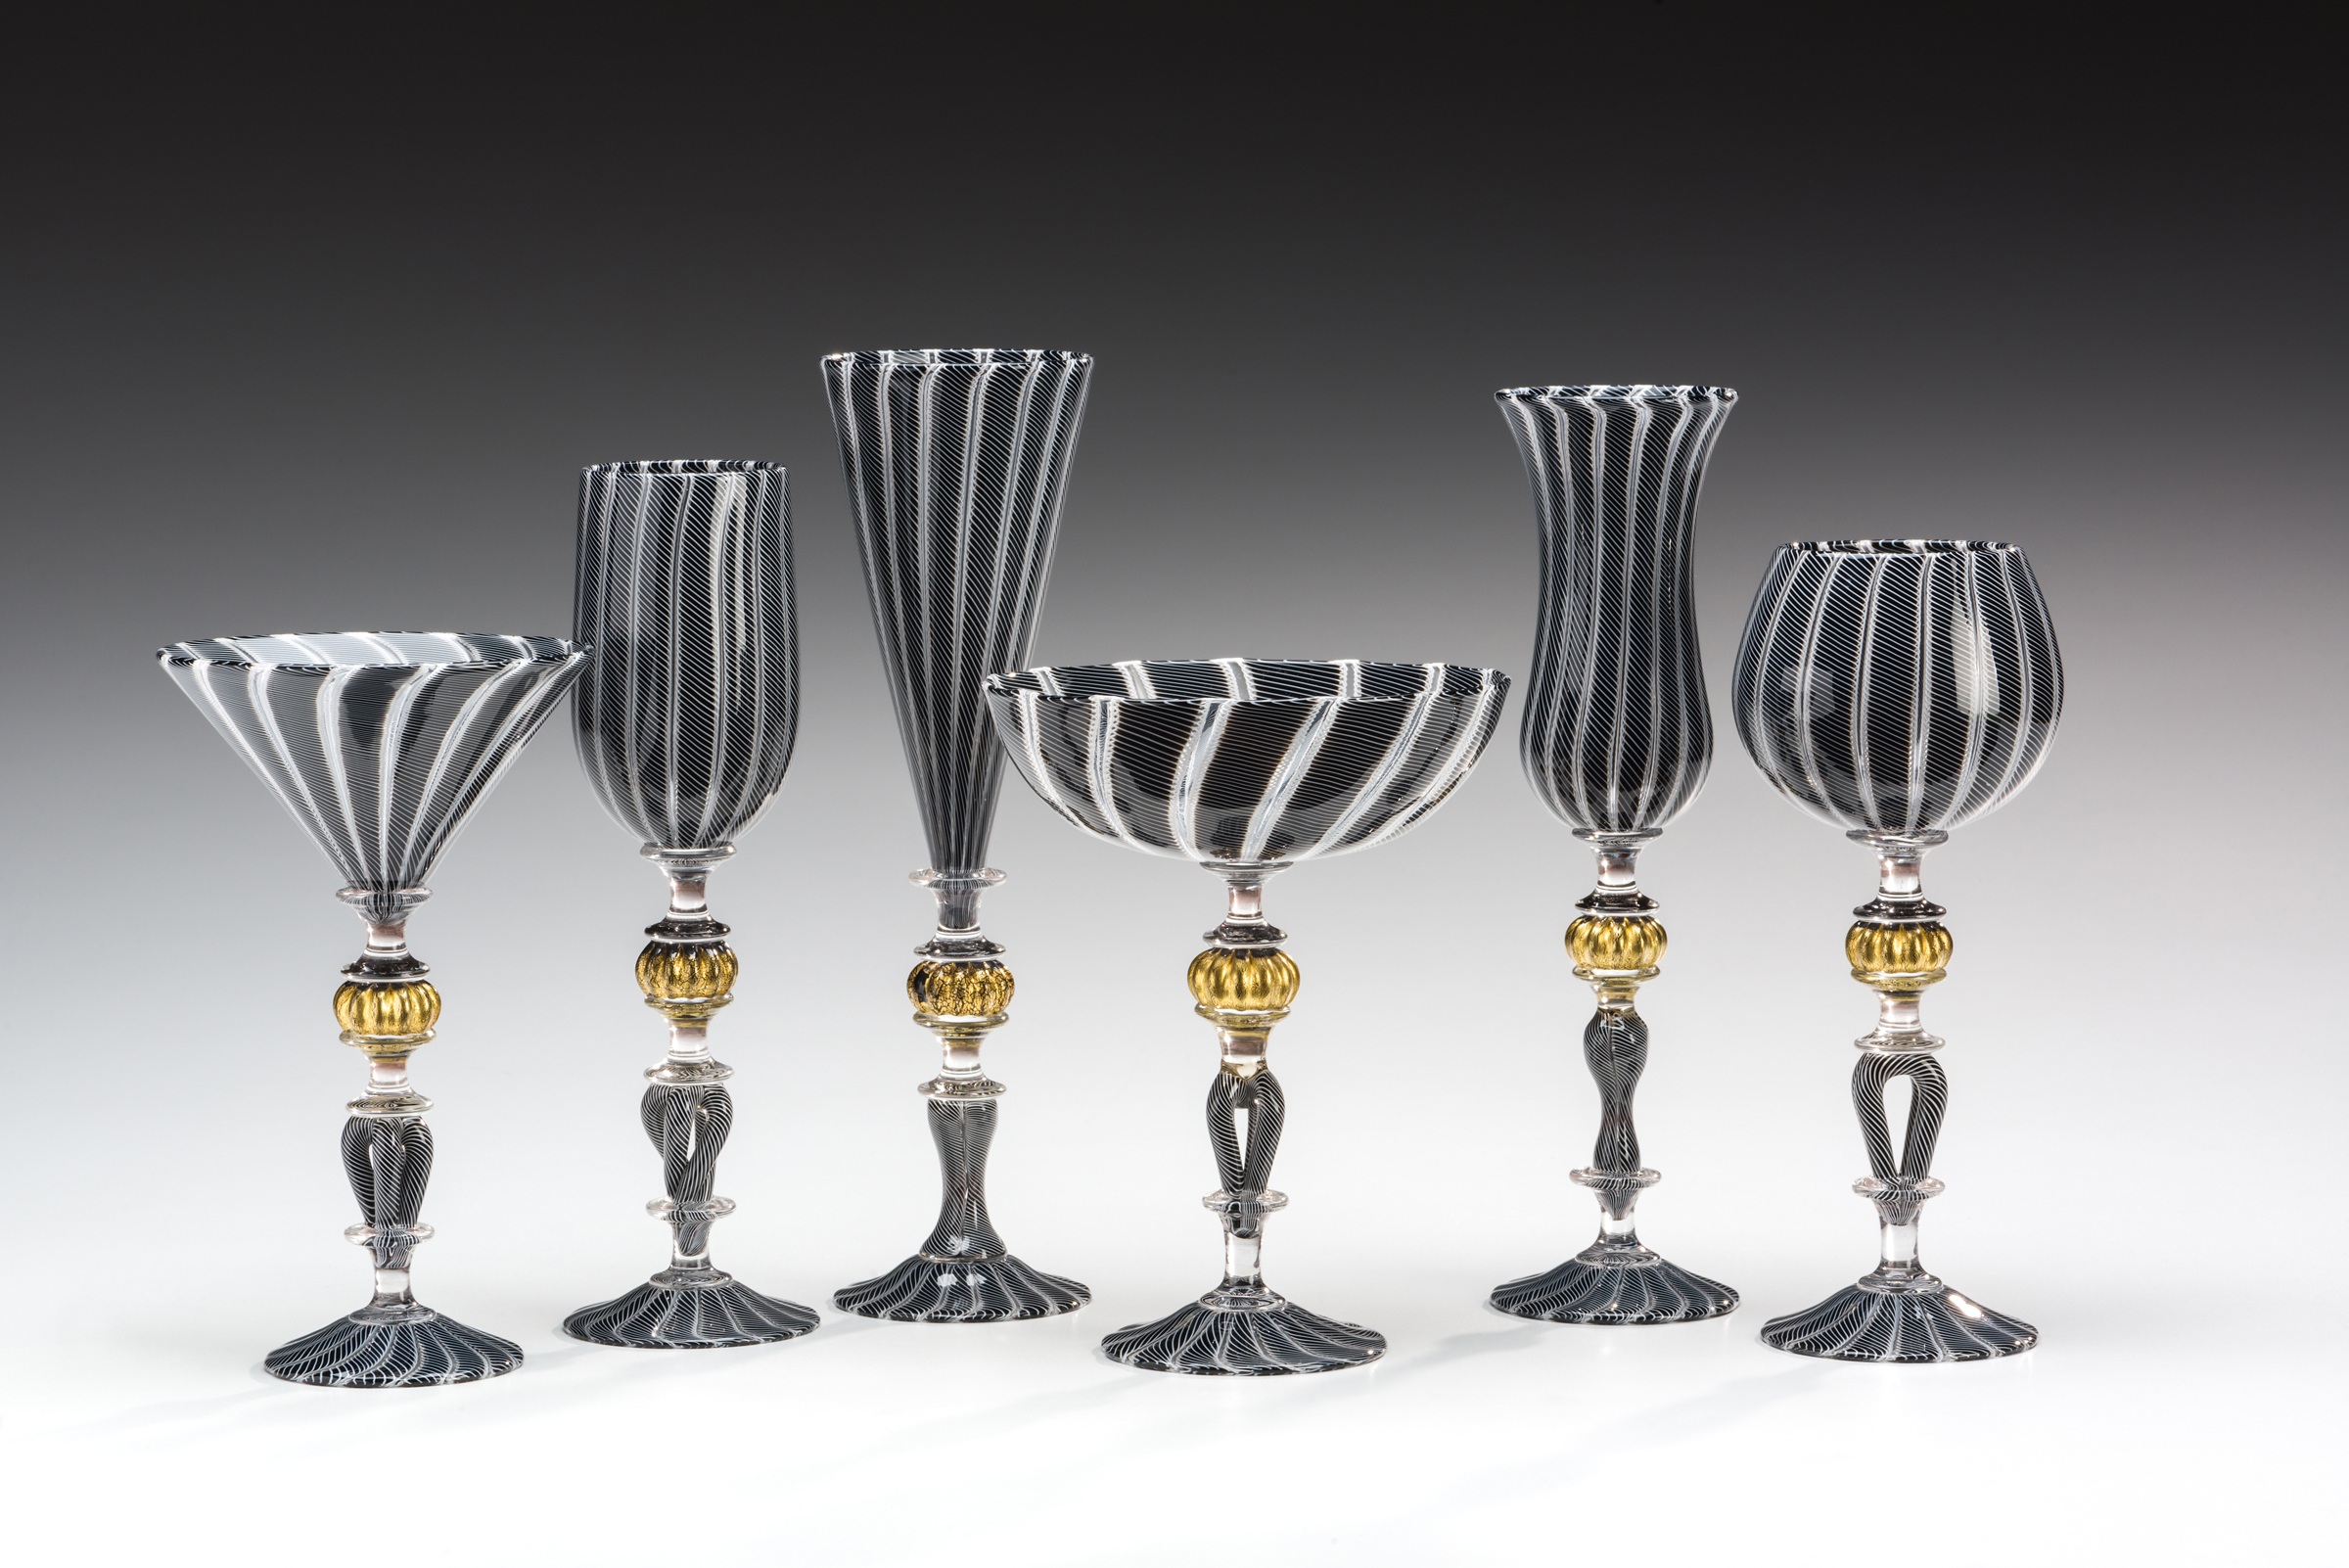 black and white cane goblets copy.jpg